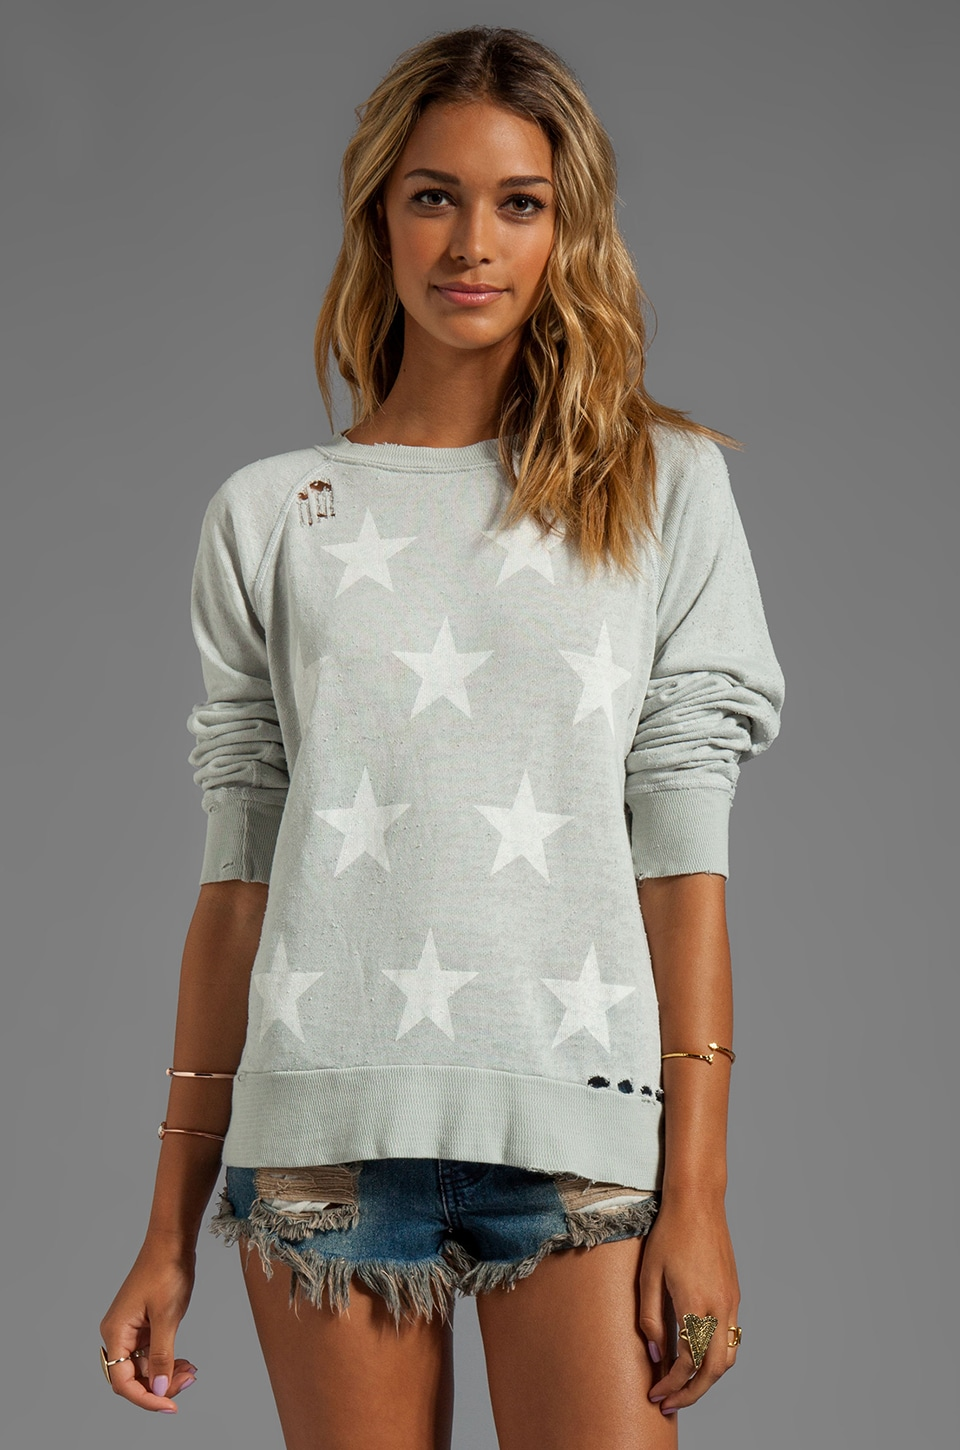 Wildfox Couture Starshine Malibu Sweater in Smoke